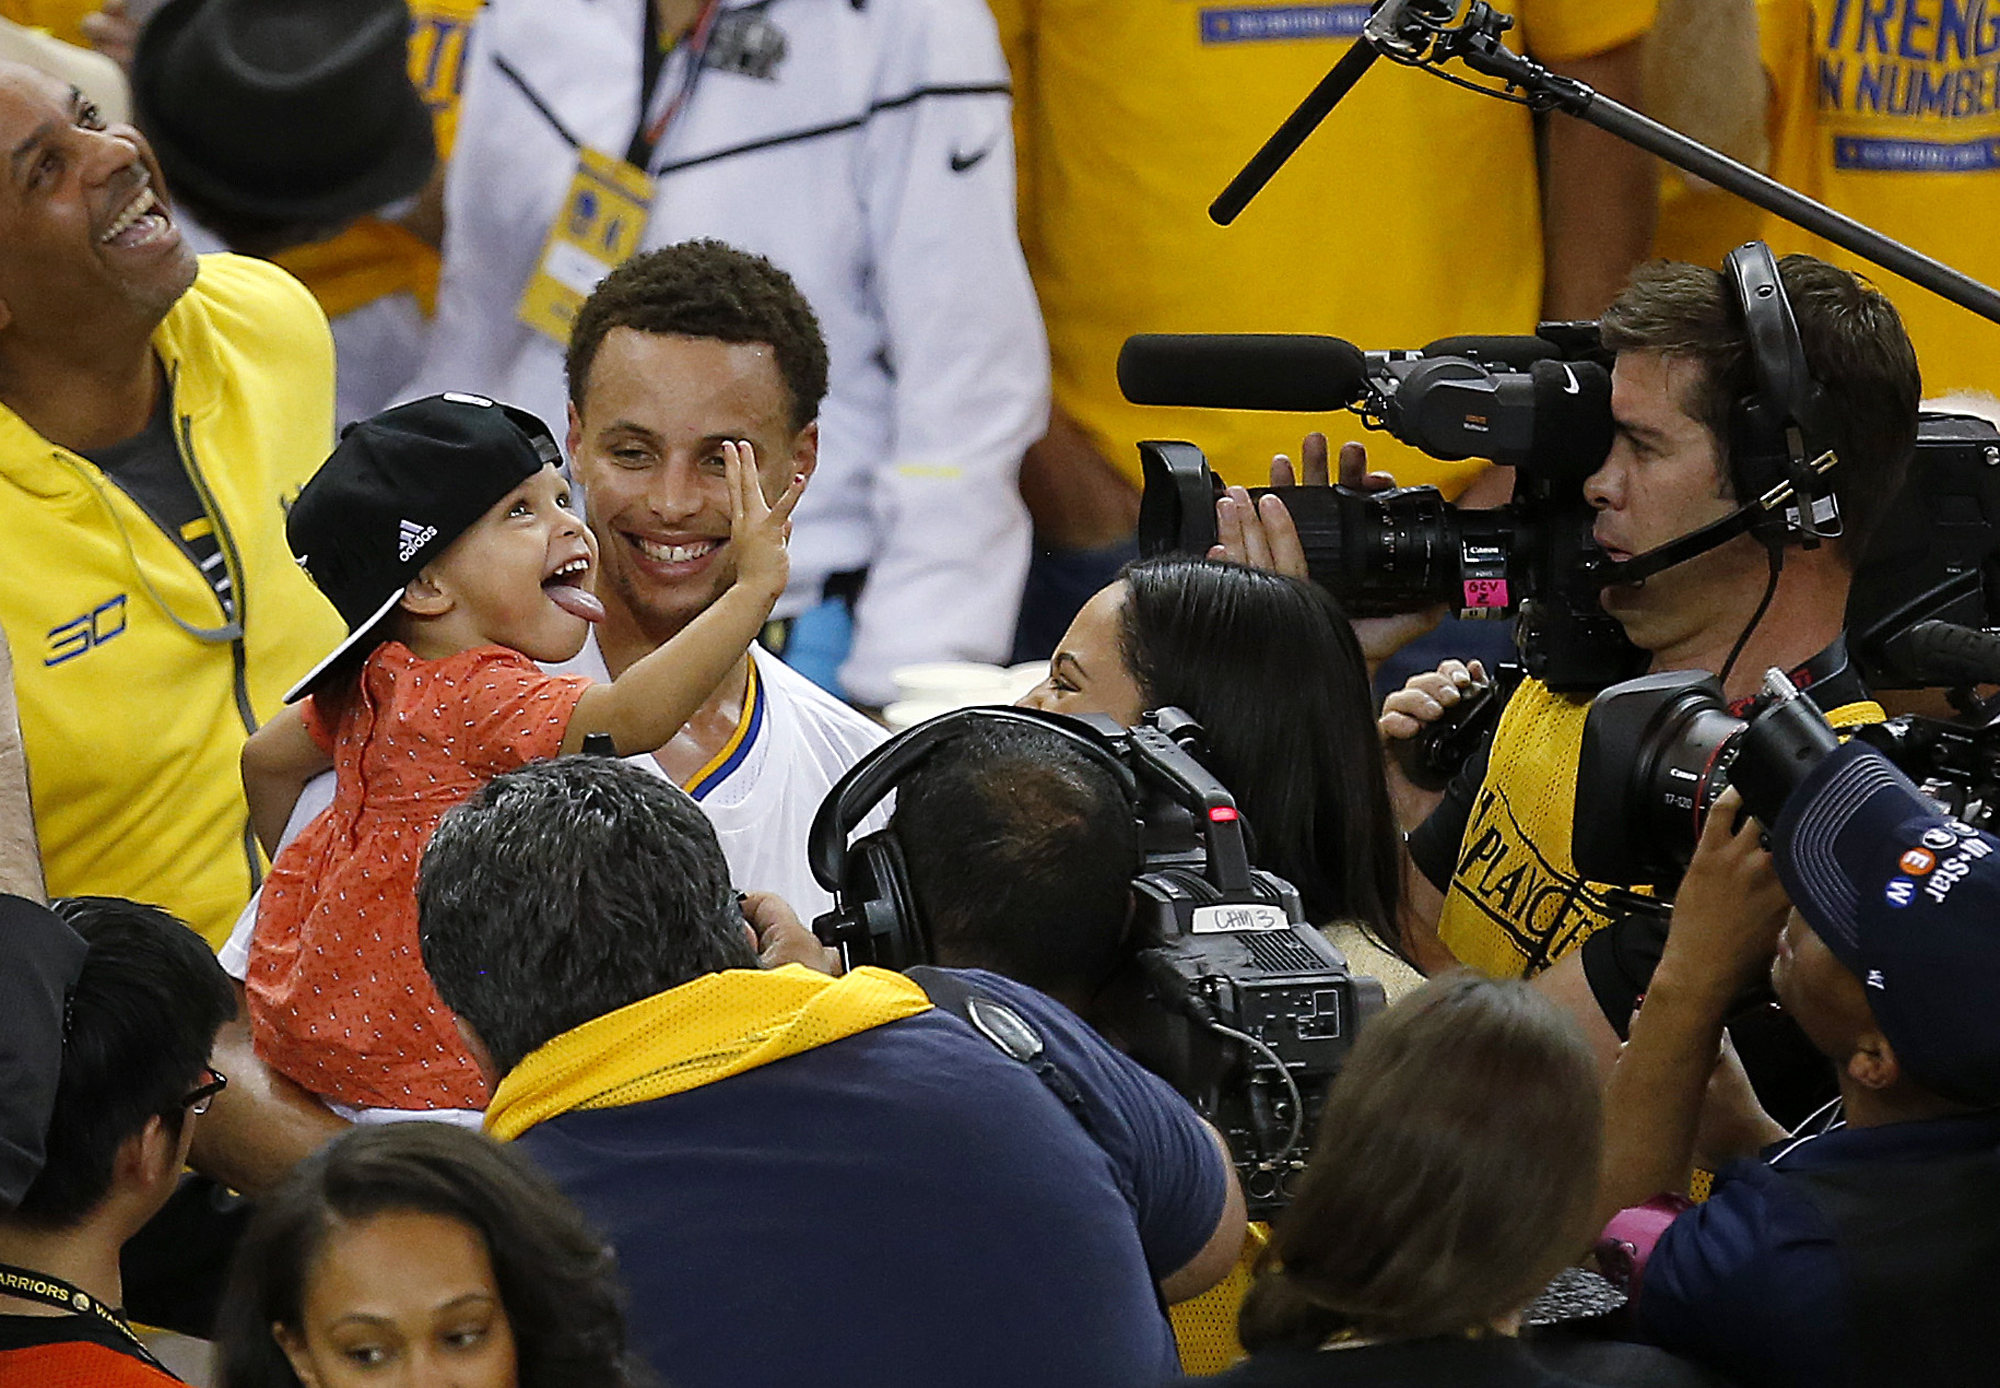 Golden State Warriors guard Stephen Curry holds his daughter Riley after Game 5 of the NBA basketball Western Conference finals against the Houston Rockets in Oakland, Calif., Wednesday, May 27, 2015. The Warriors won 104-90 and advanced to the NBA Finals. (AP Photo/Tony Avelar)